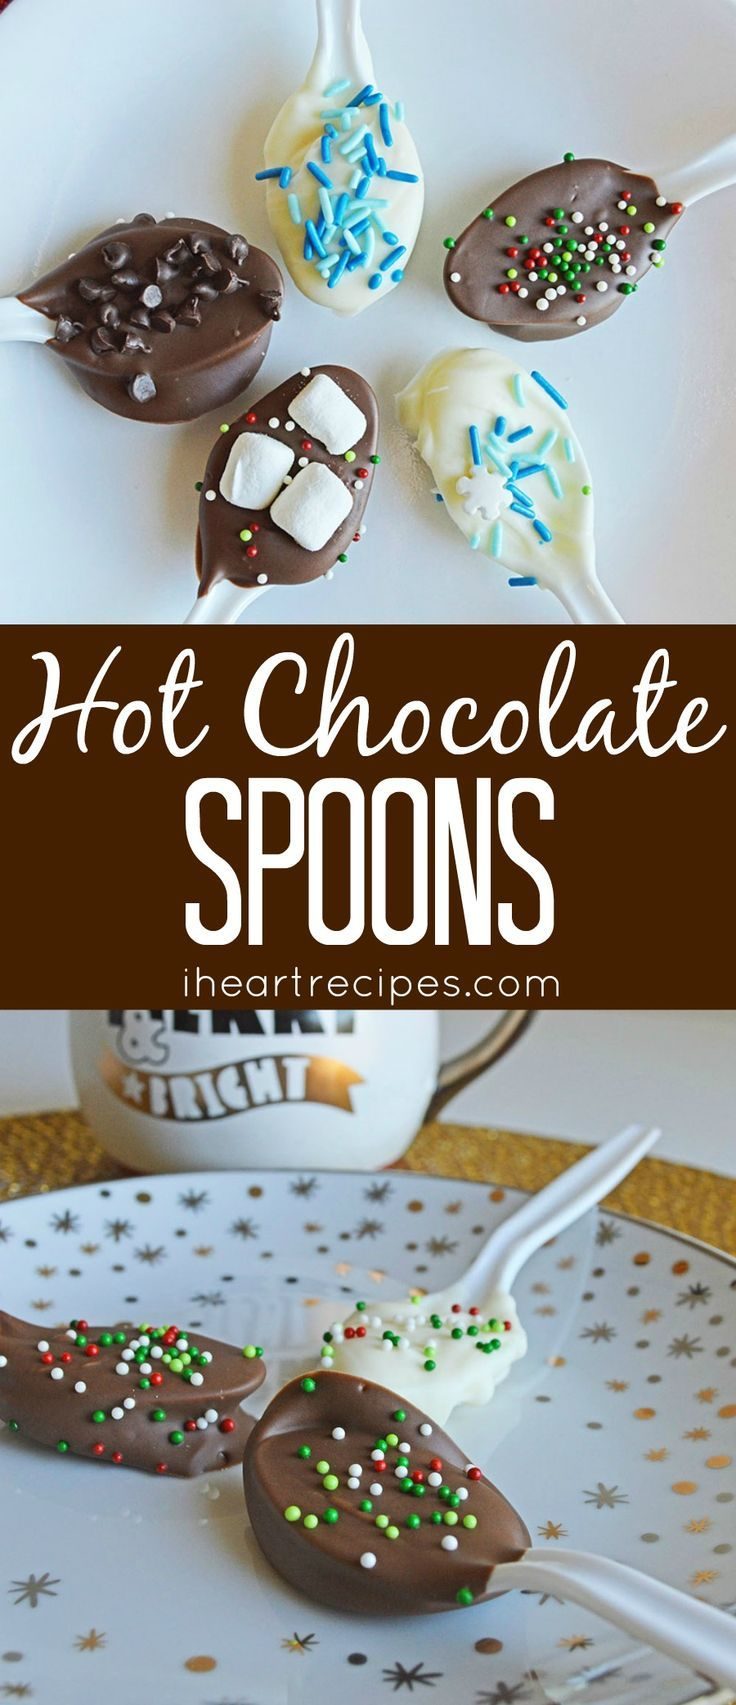 Easy hot chocolate spoons that makes the perfect cup of hot chocolate every darn time! Planning a hot chocolate bar? I have the perfect idea for you. Instead of pulling out all of the hot cocoa mix, marshmallows, sprinkles, and etc - Why not just make hot chocolate spoons? It's easy & fun to make. PLUS they make the perfect cup of hot chocolate every time. You just need a few ingredients & supplies to make these delicious hot chocolate spoons, so let's get started! Share &...